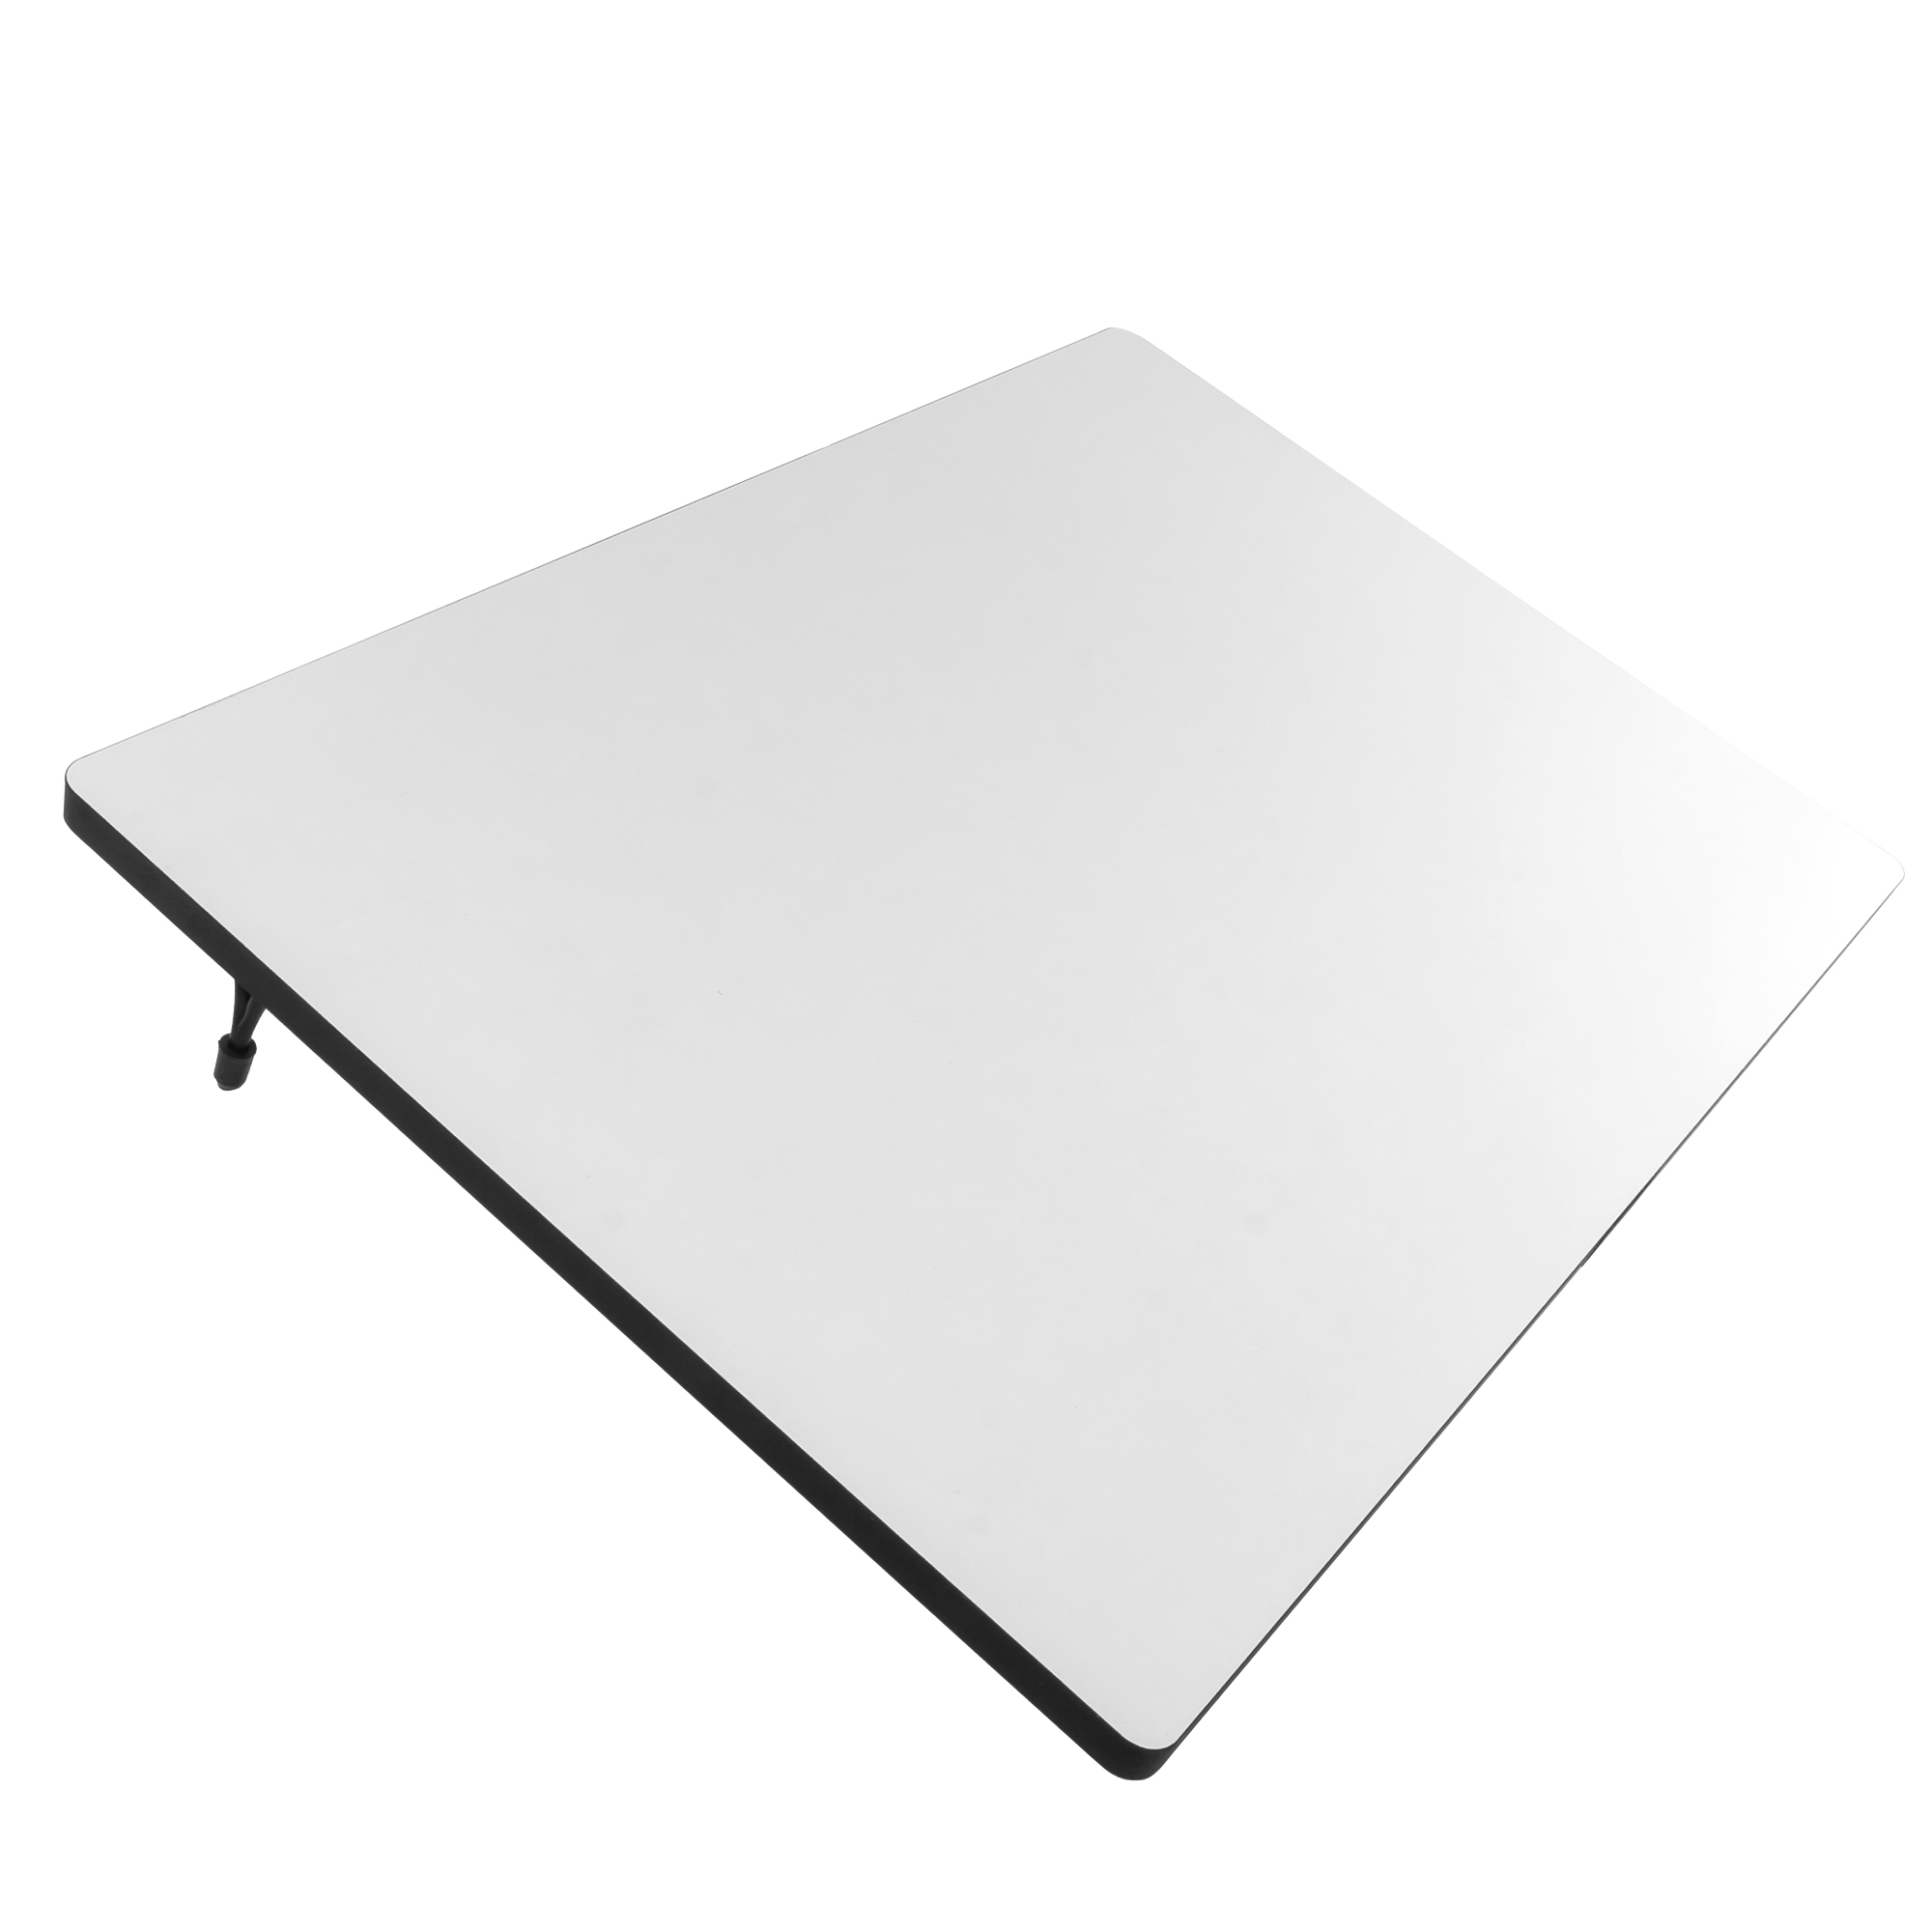 the stp drafting drawing board by pacific arc helps protect your surface